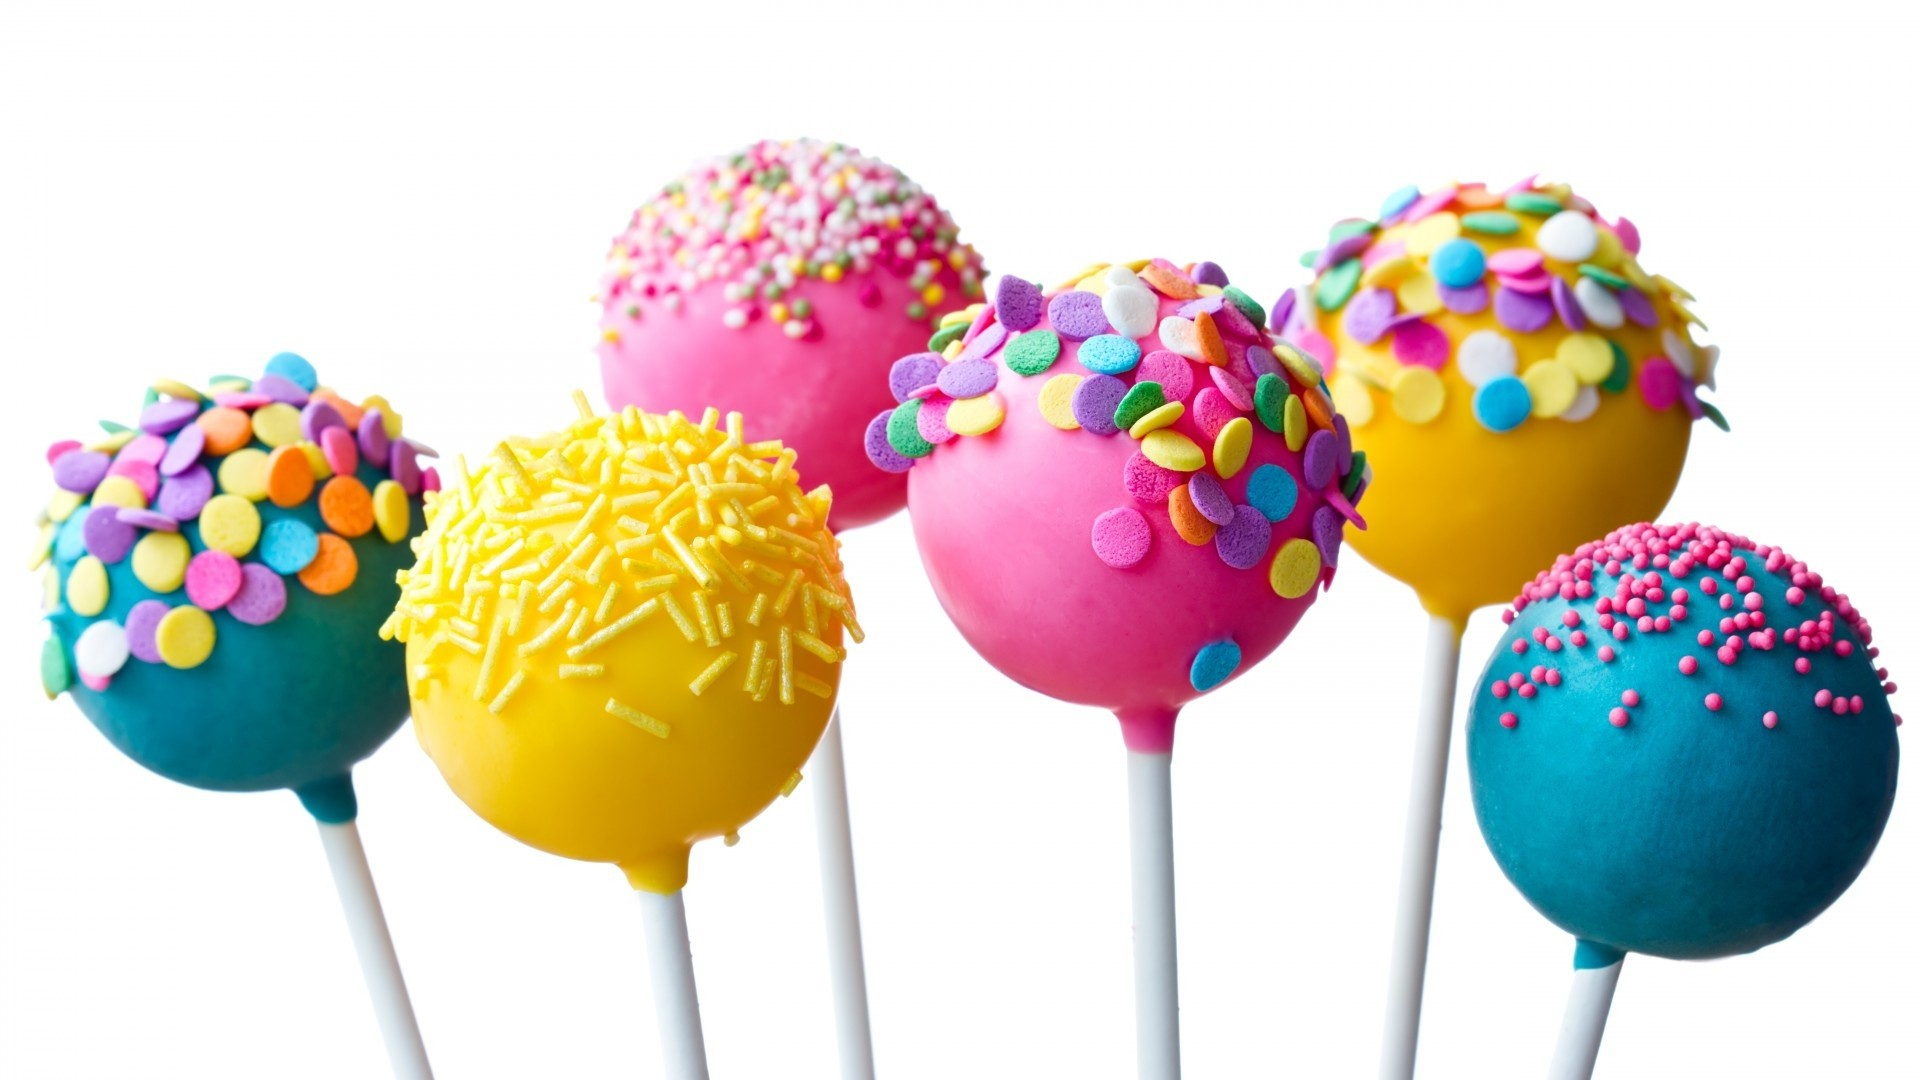 Wallpaper food, candy, sprinkling, frosting